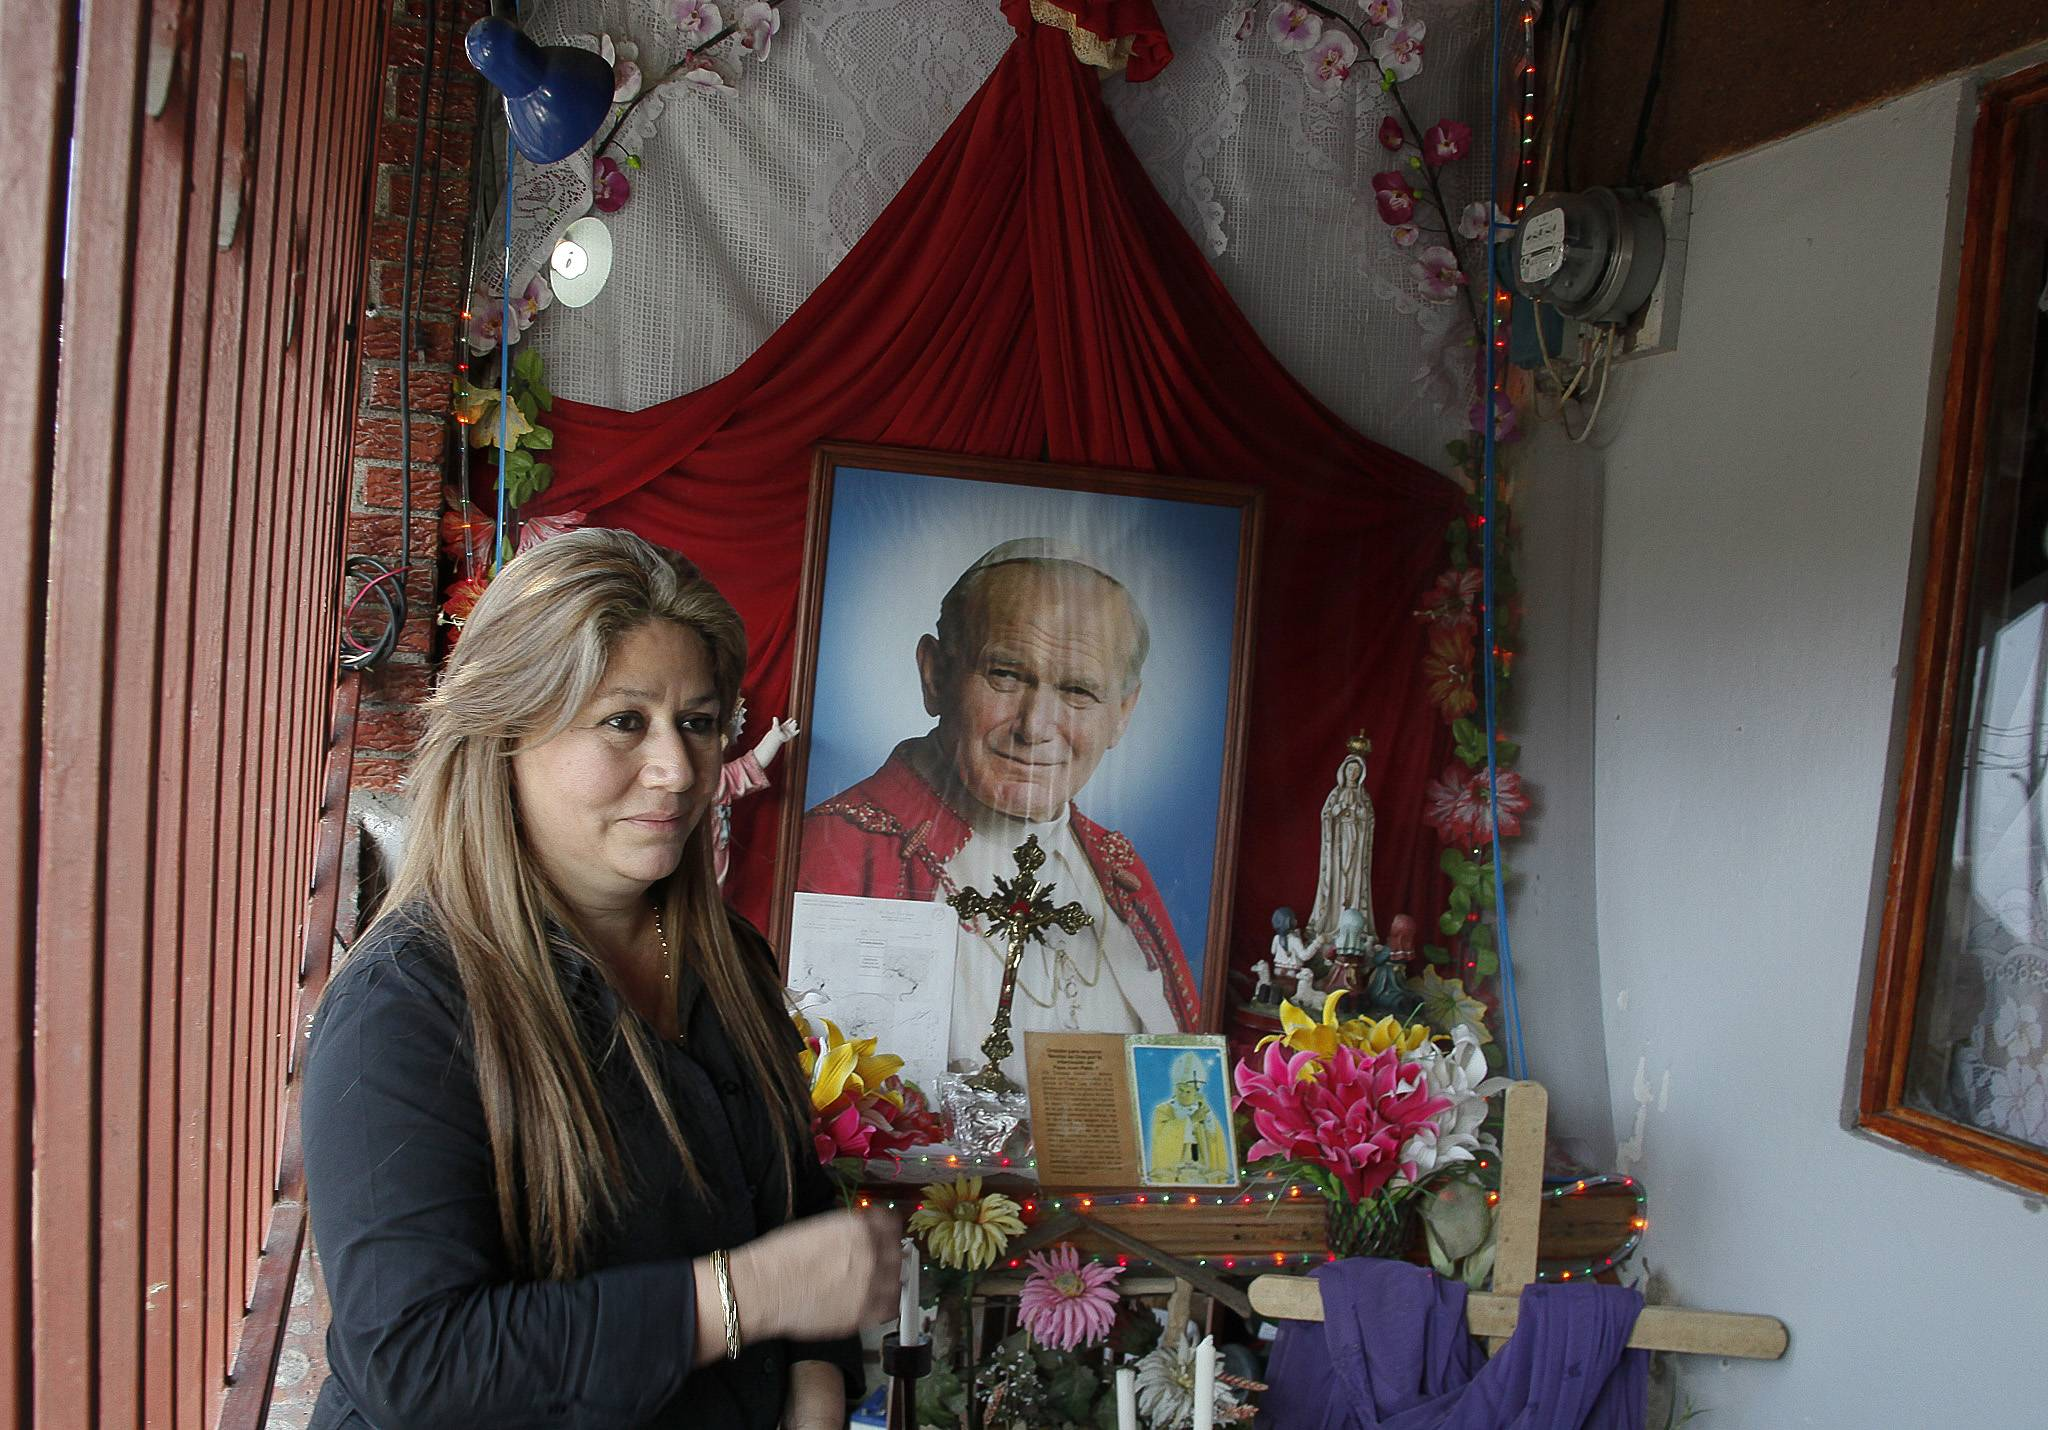 Floribeth Mora stands by her shrine to Pope John Paul II inside the entrance to her home in La Union de Cartago, Costa Rica. Mora, her doctors and the Catholic Church say her aneurysm disappeared in May of 2011 in a miracle that cleared the way for the late pope to be declared a saint.